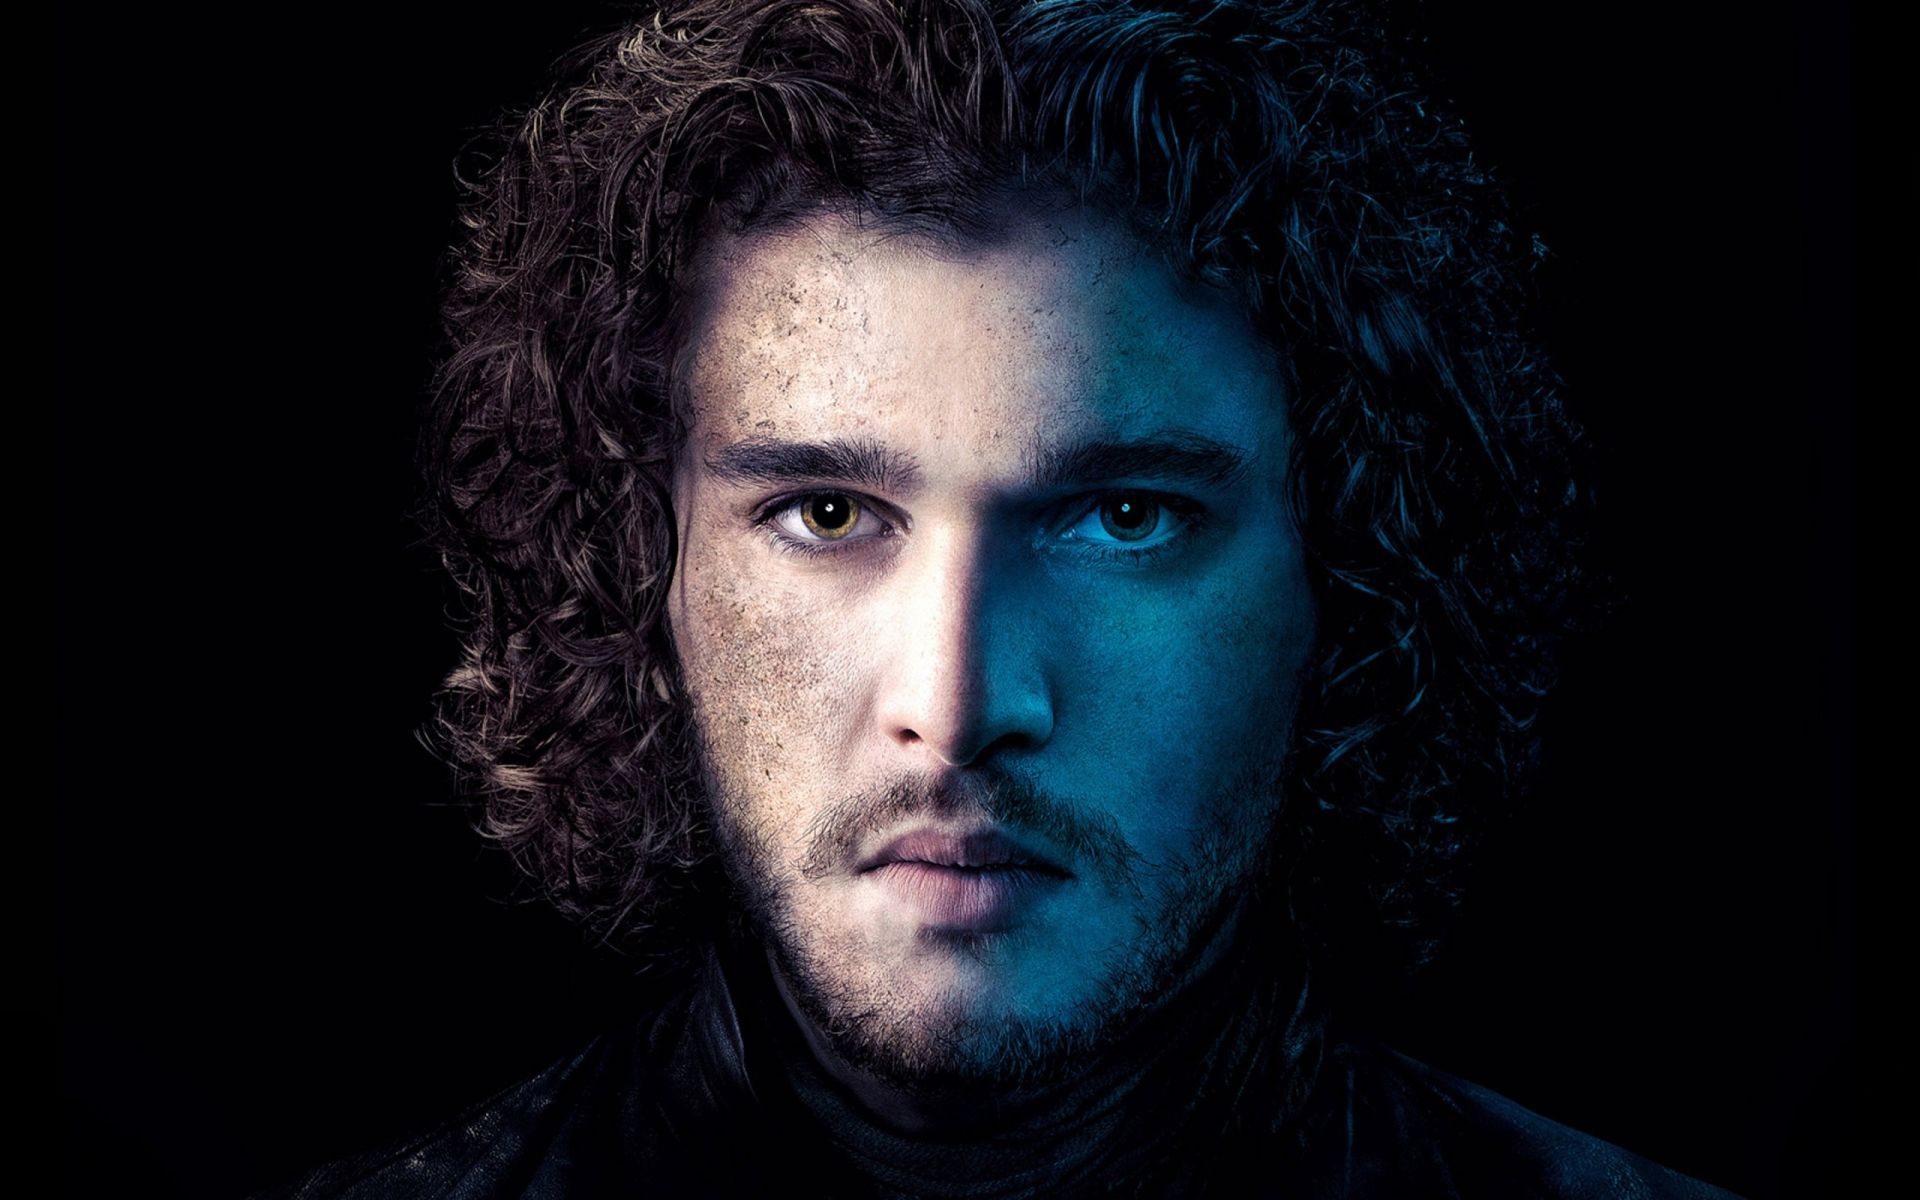 Game of Thrones Jon Snow face